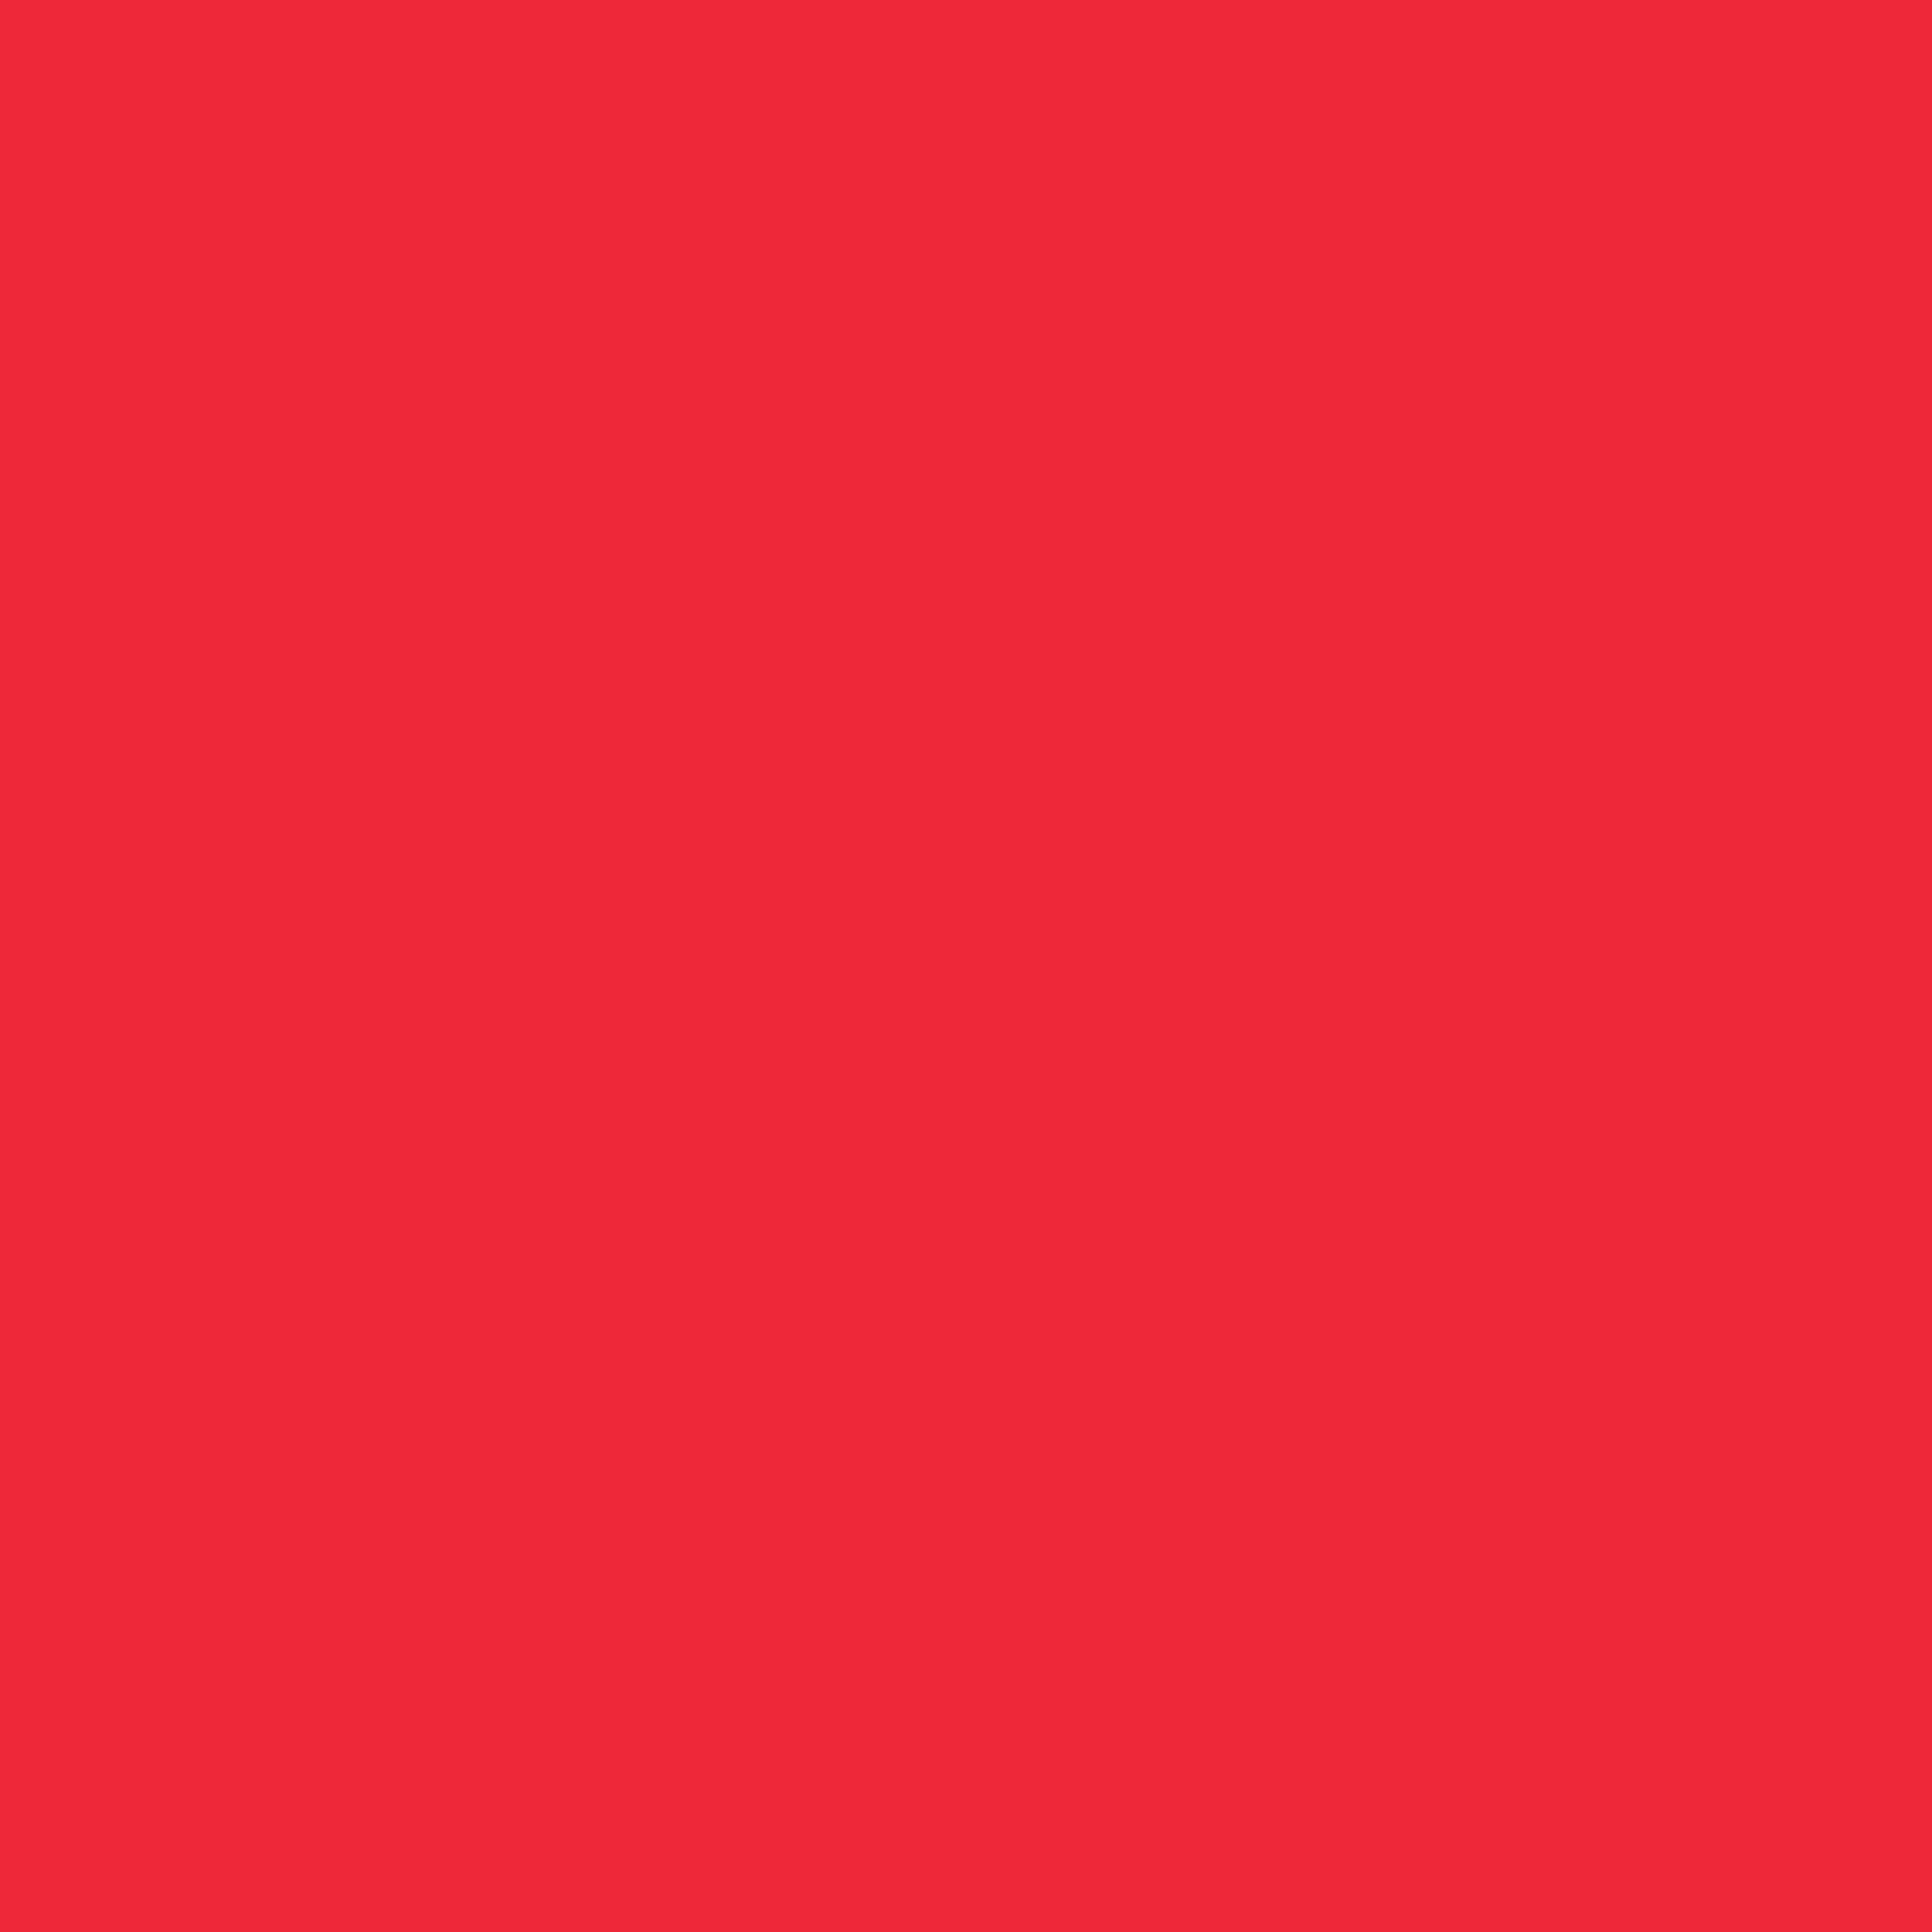 3600x3600 Imperial Red Solid Color Background